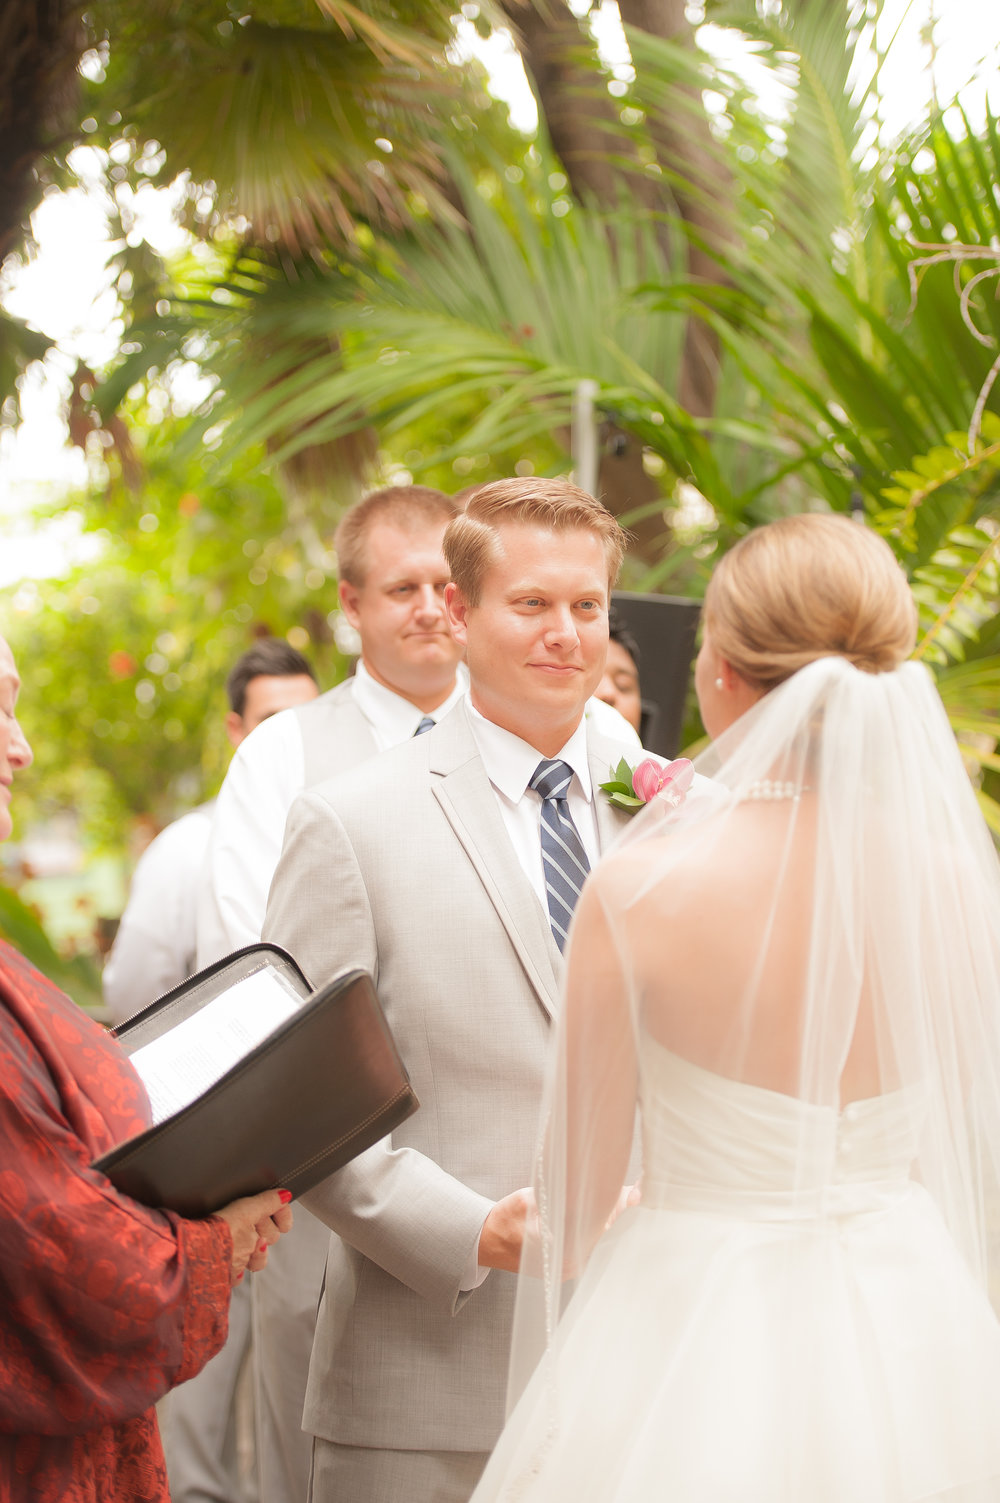 Amanda+James_Audubon House Key West Wedding18.jpg